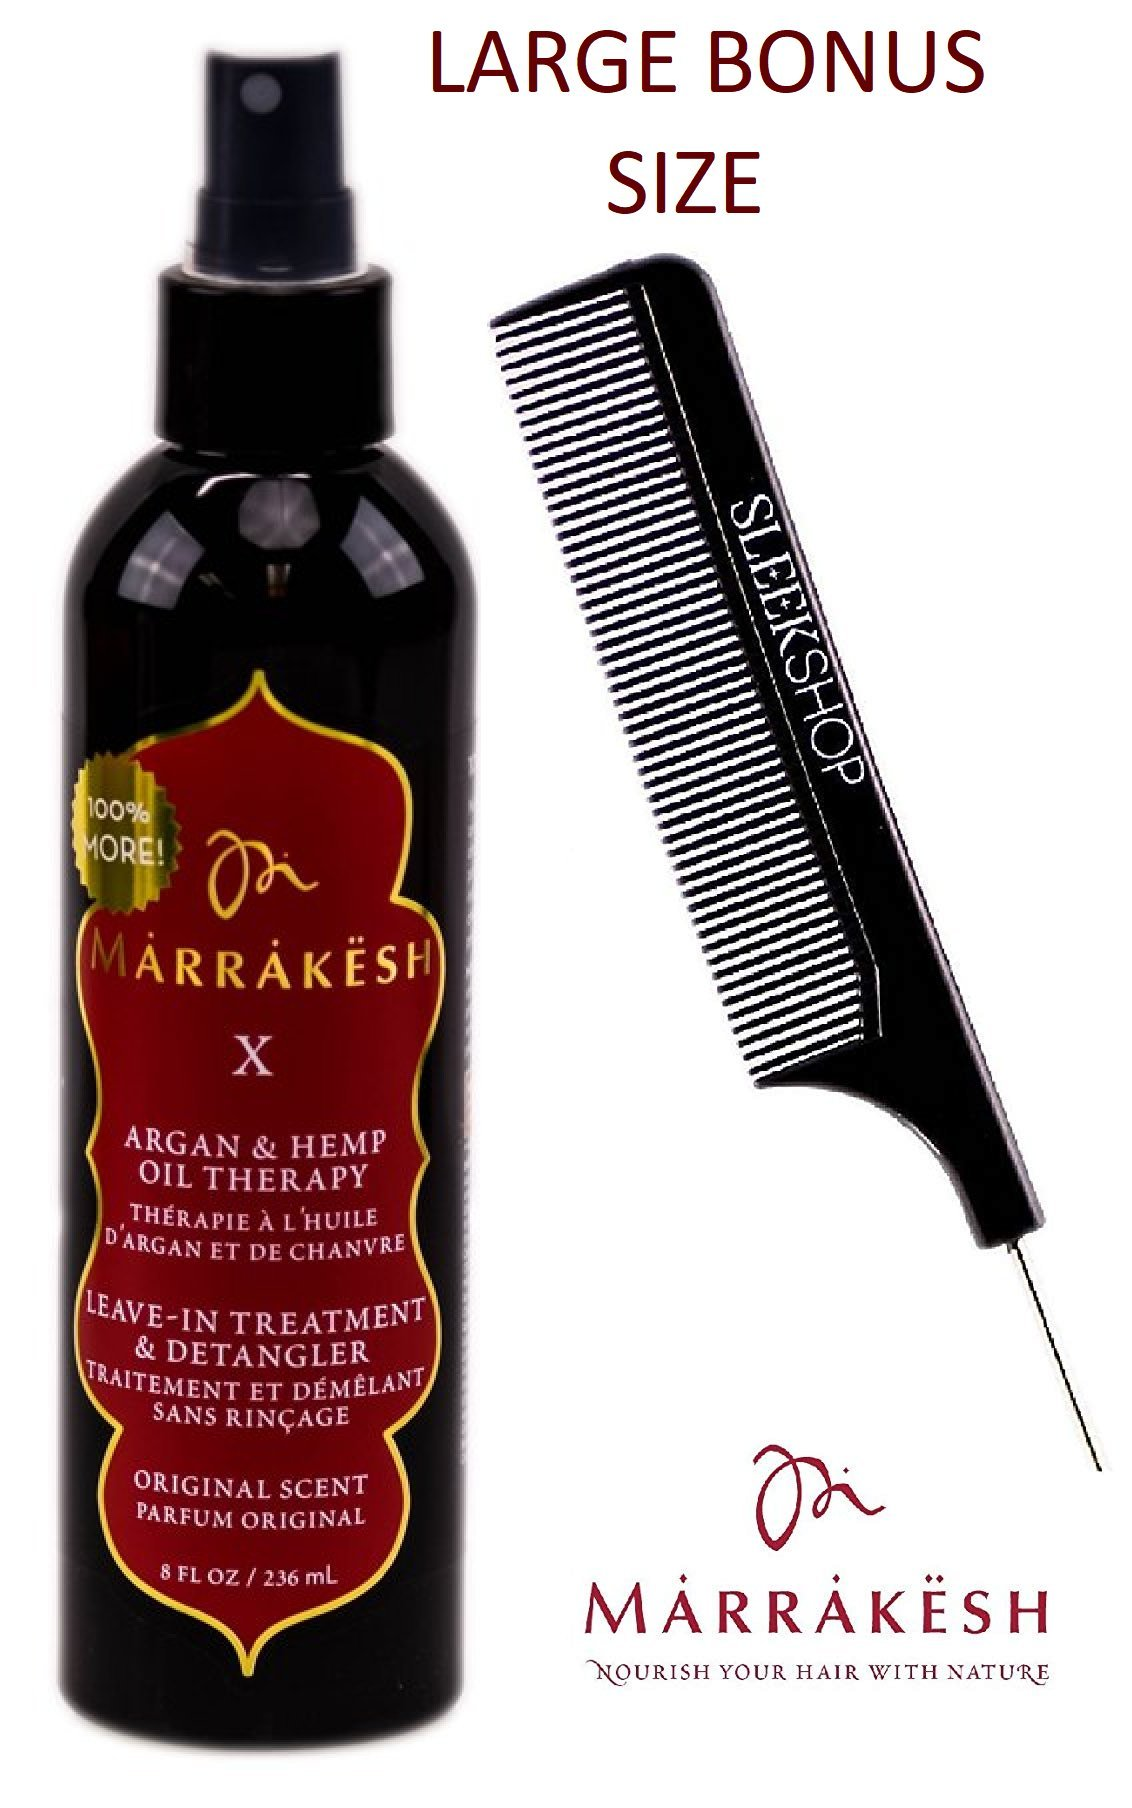 Marrakesh X Leave-In Treatment & Detangler (ORIGINAL SCENT) with Argan & Hemp Oil Therapy Spray Conditioner by Earthly Body (with Sleek Steel Pin Tail Comb) (Original - 8 oz/LARGE BONUS) by Earthly Body by Marrakesh